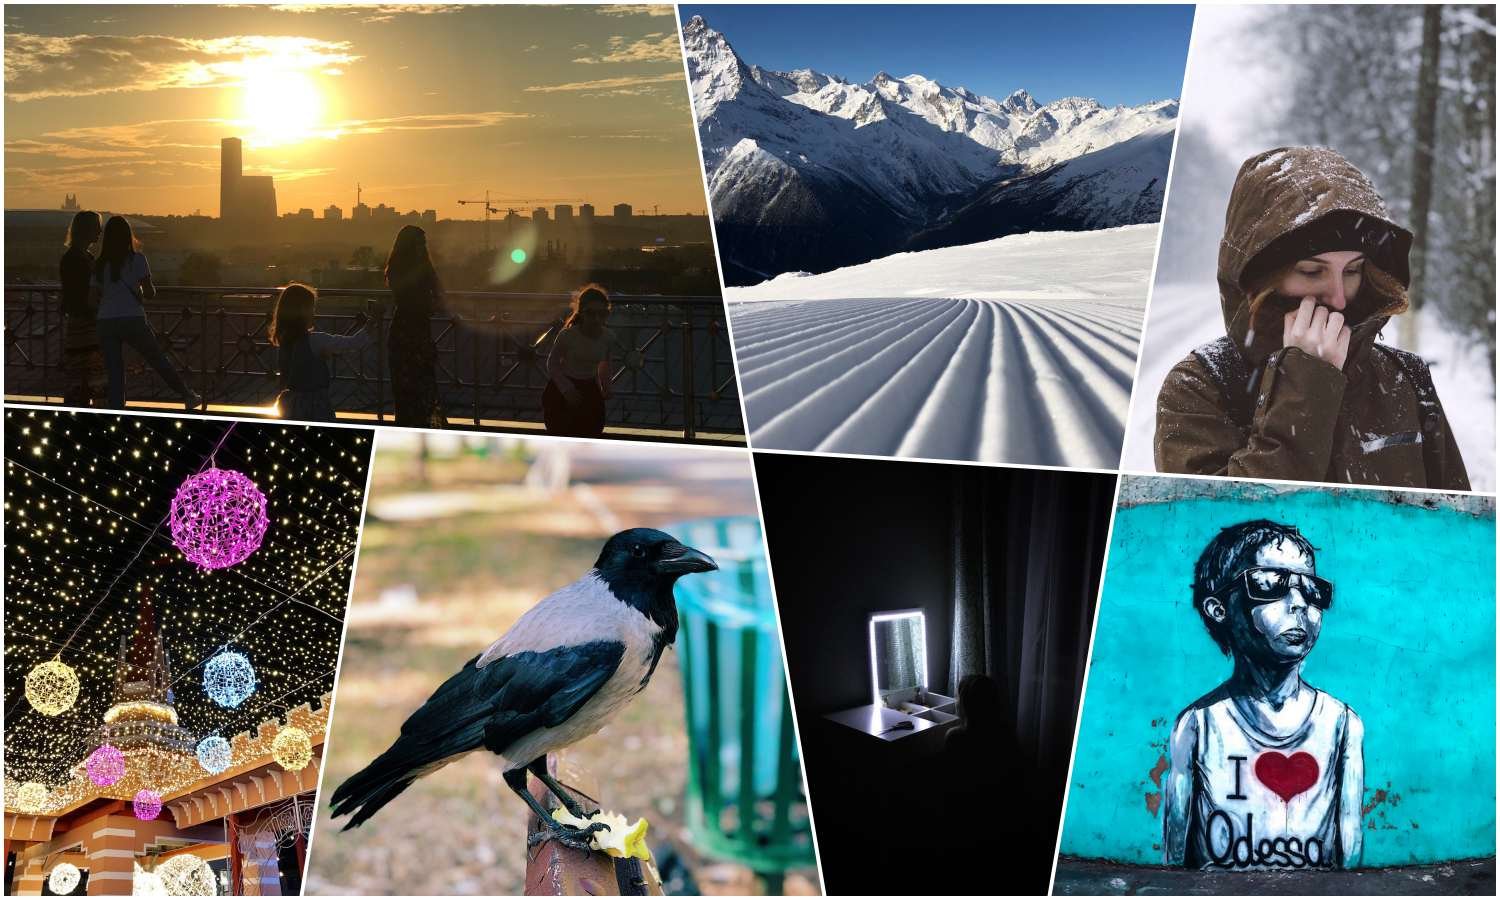 Gallery: What is your iPhone camera capable of?